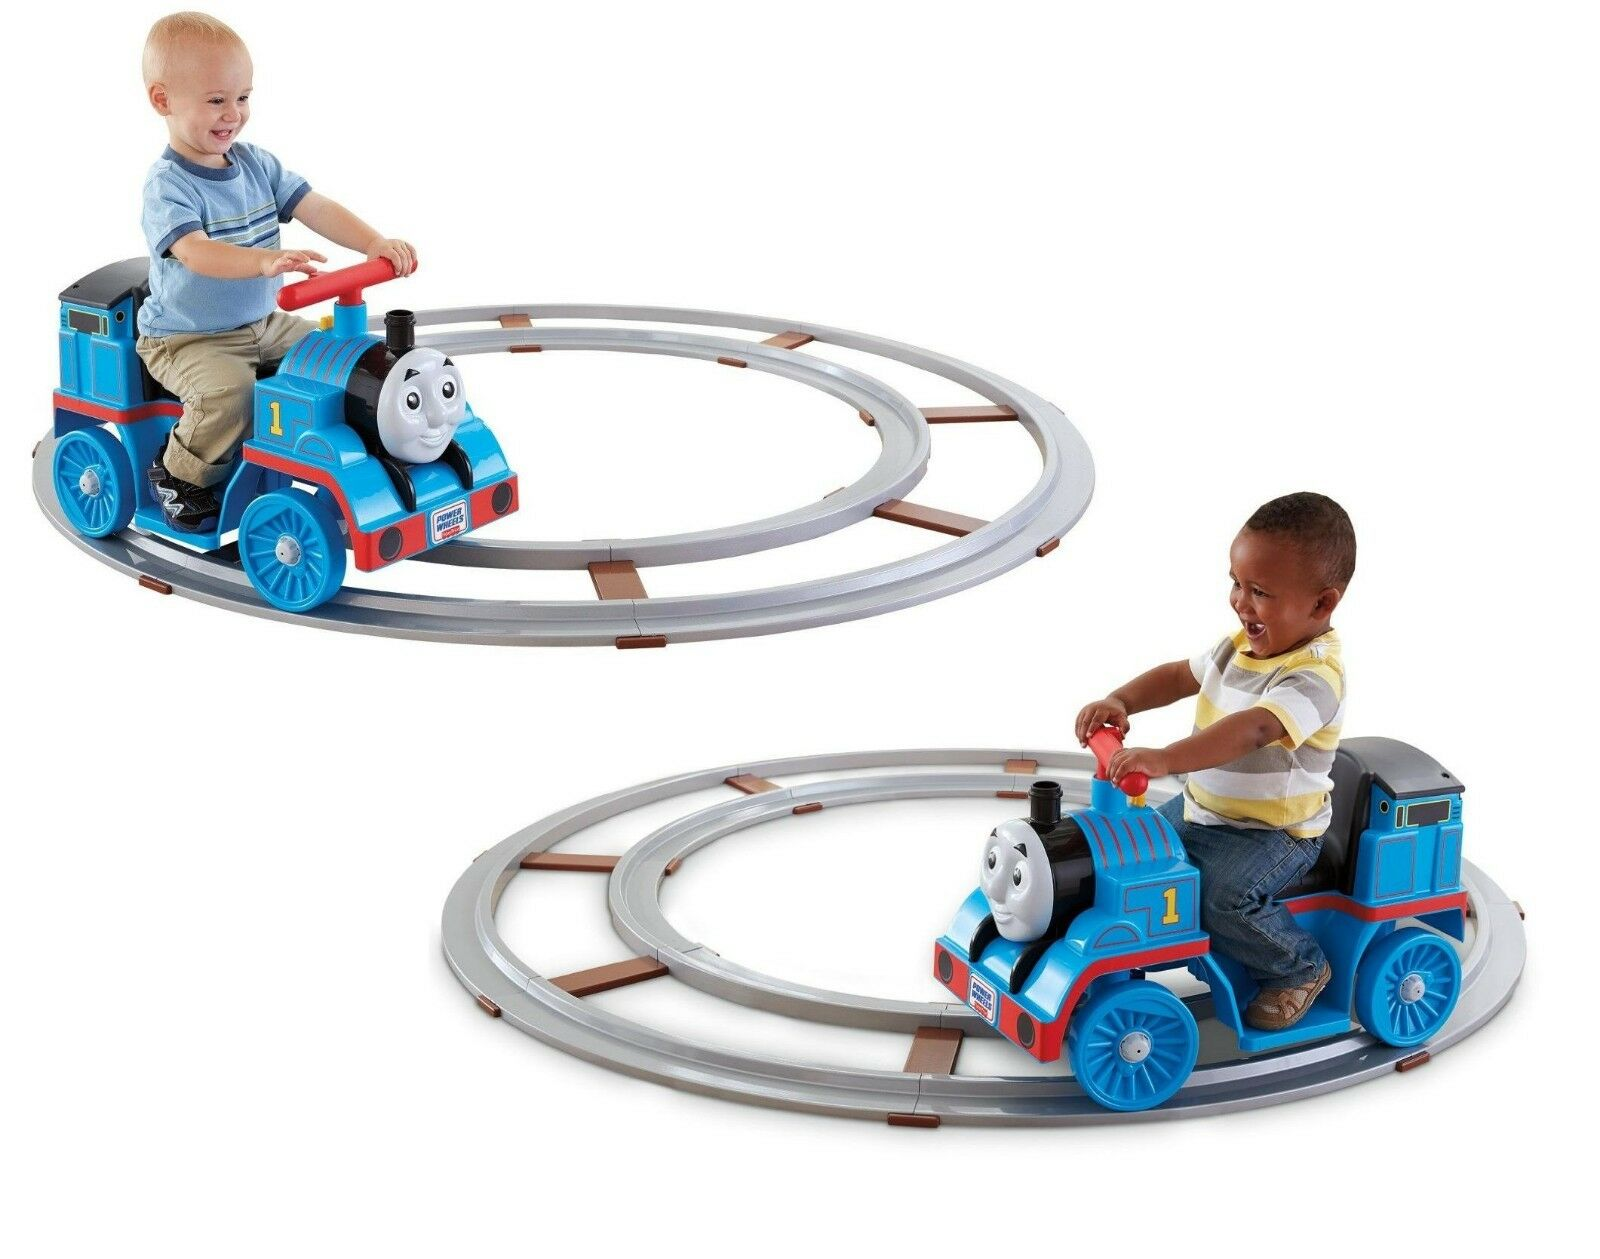 Push Toys For Toddlers : Fisher price kids ride on train track toddler toy push